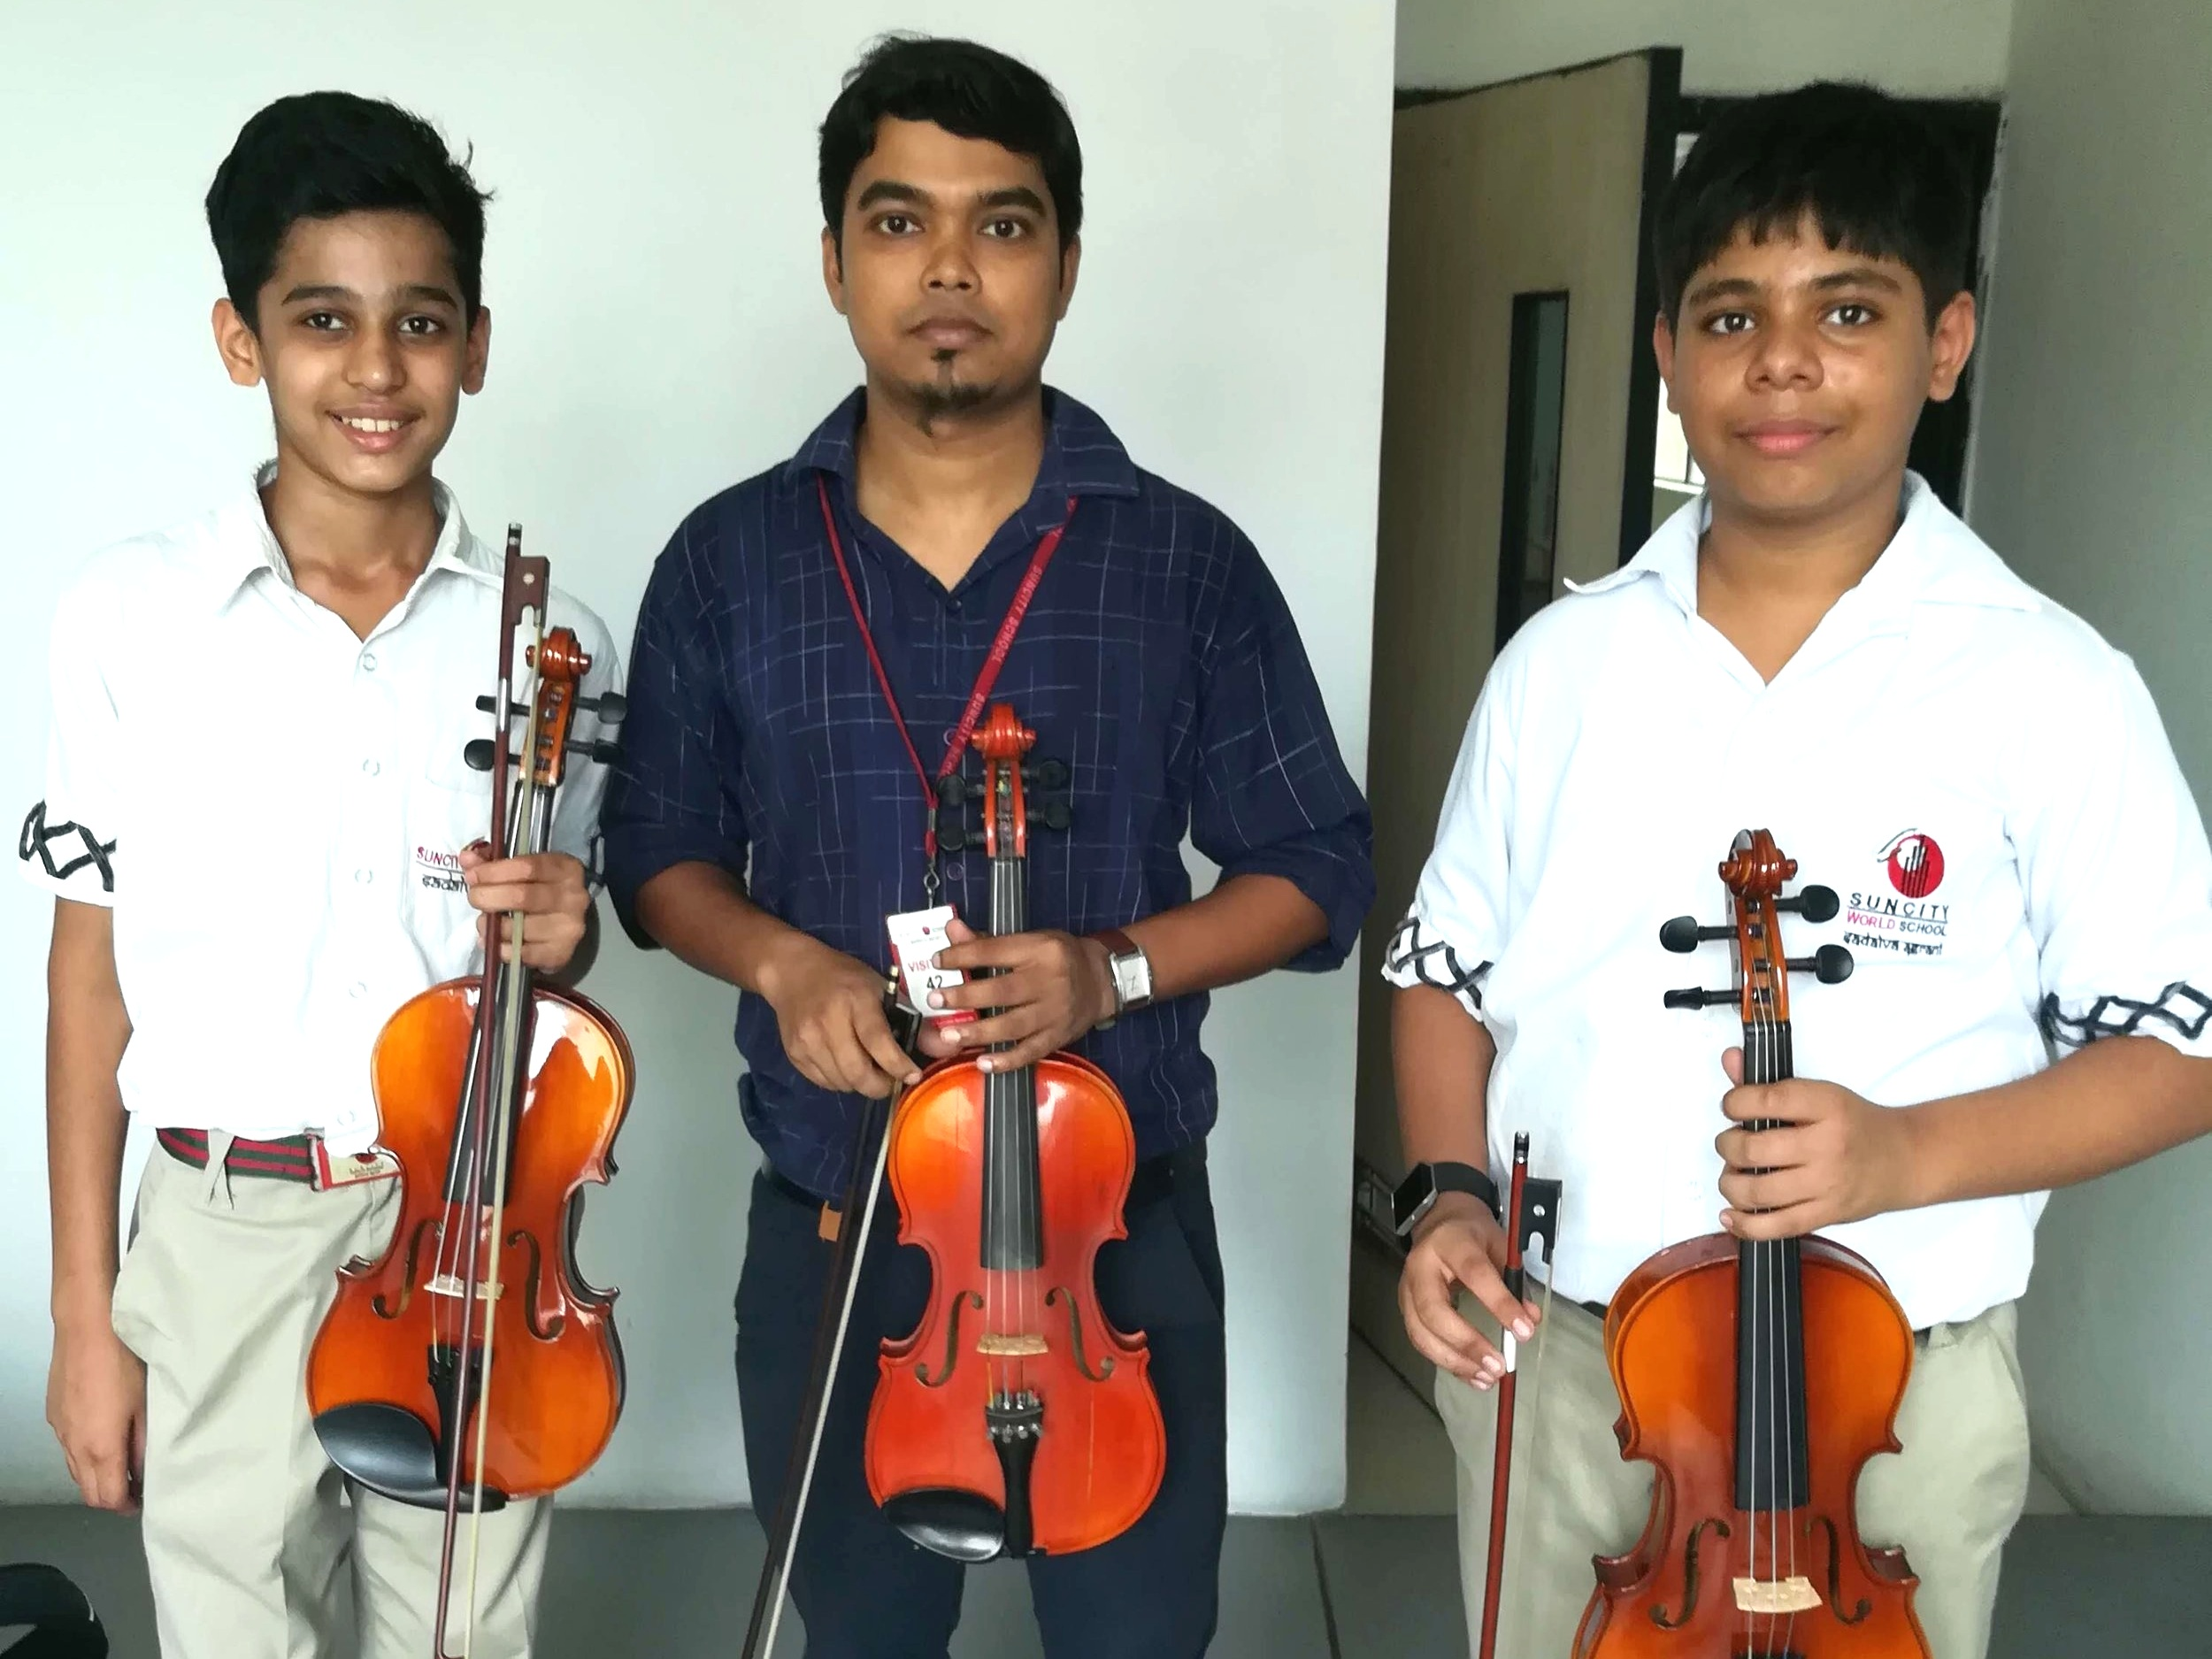 Violin students at Suncity School outreach site